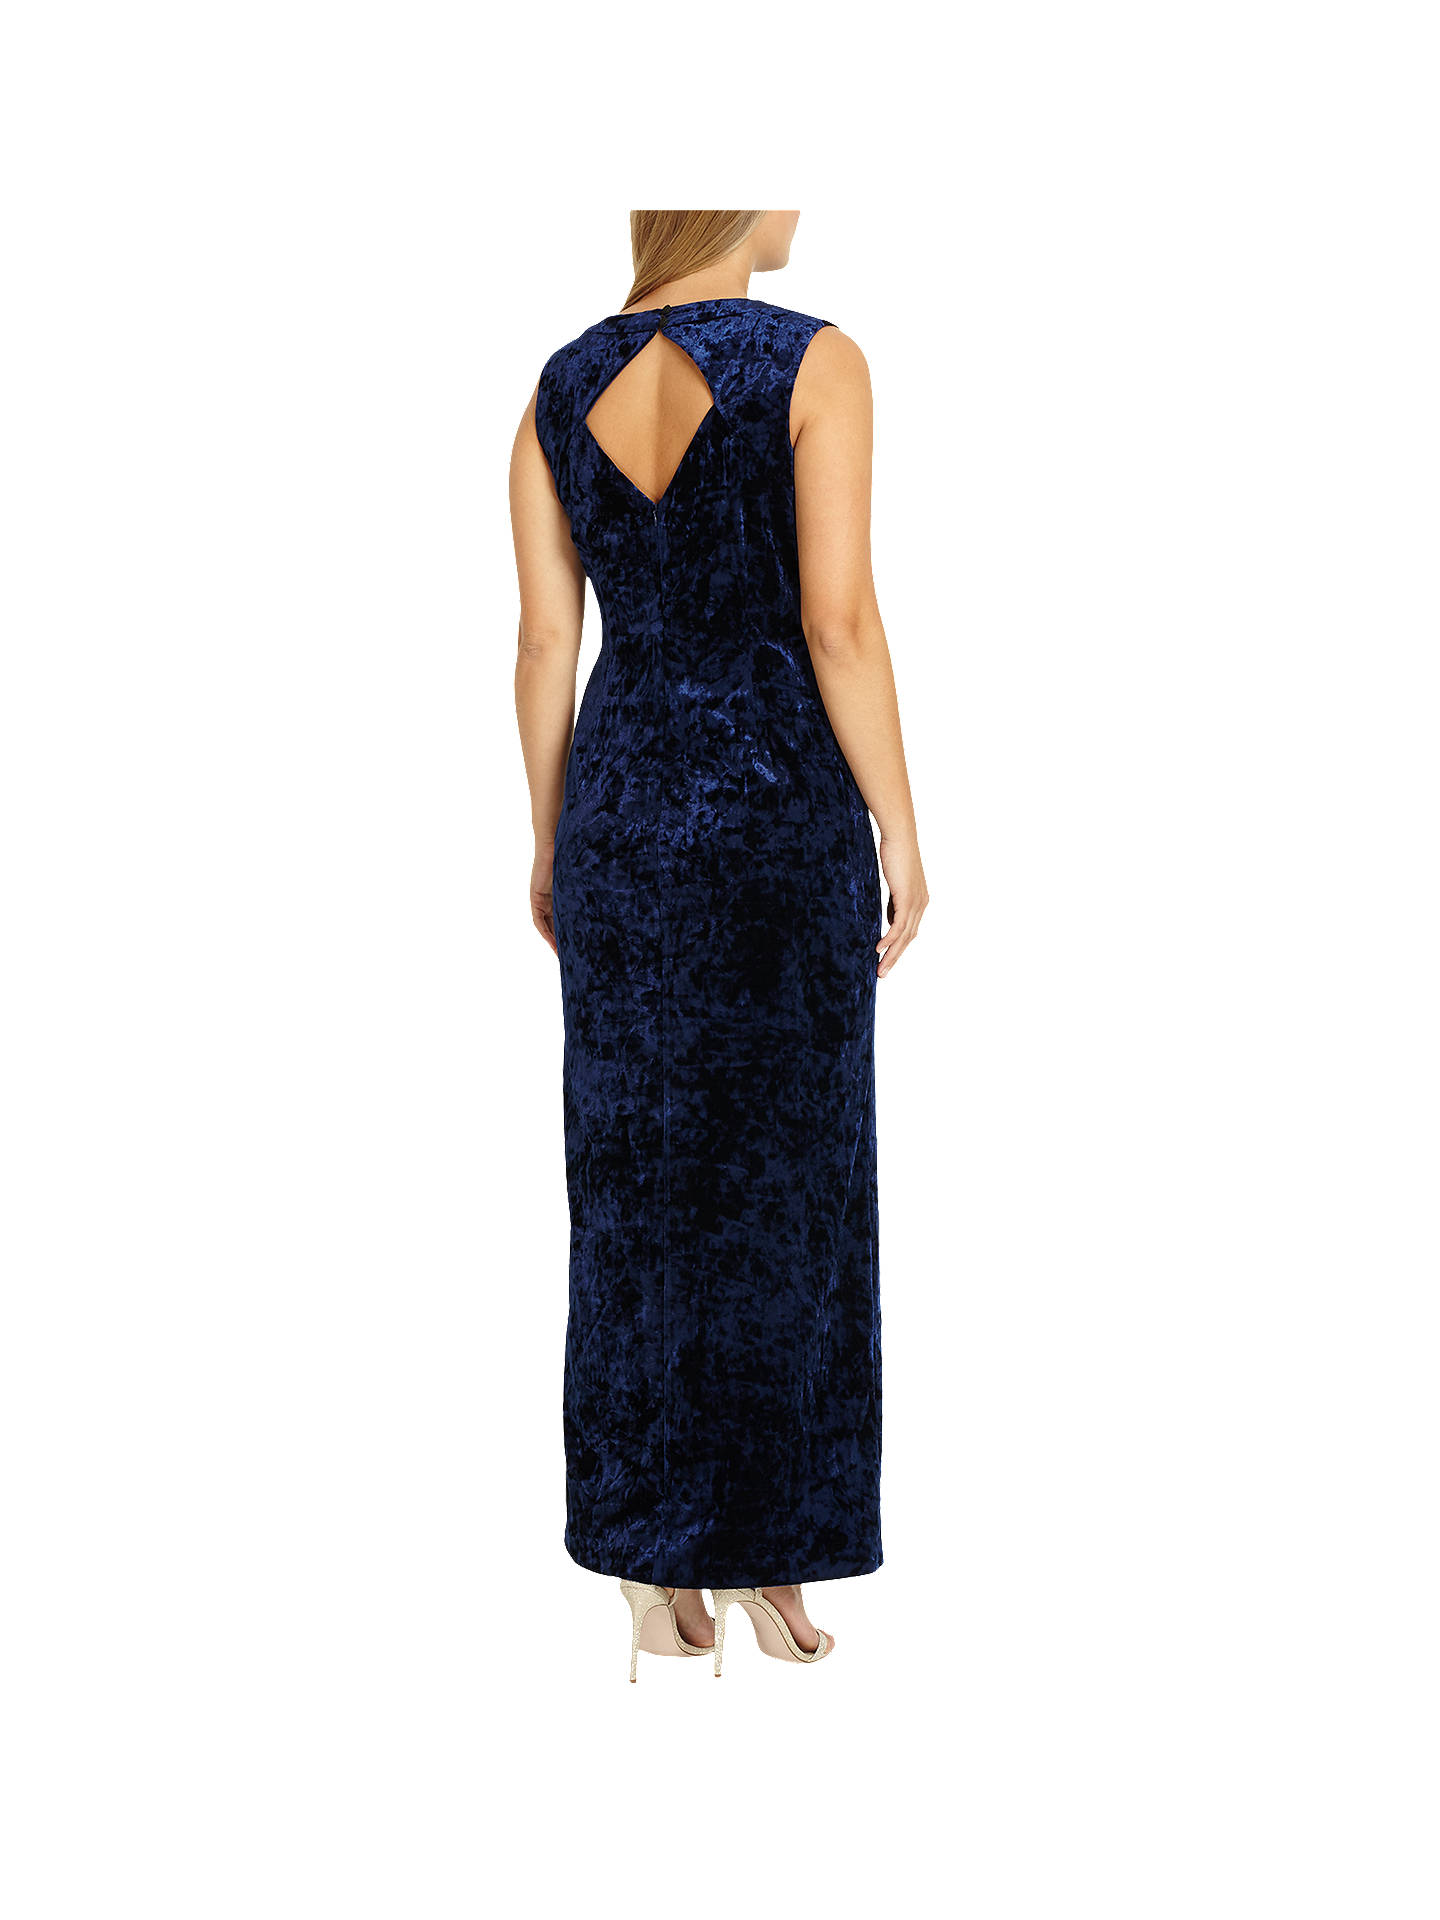 BuyStudio 8 Katie V Neck Sleeveless Velvet Maxi Dress, Navy, 14 Online at johnlewis.com